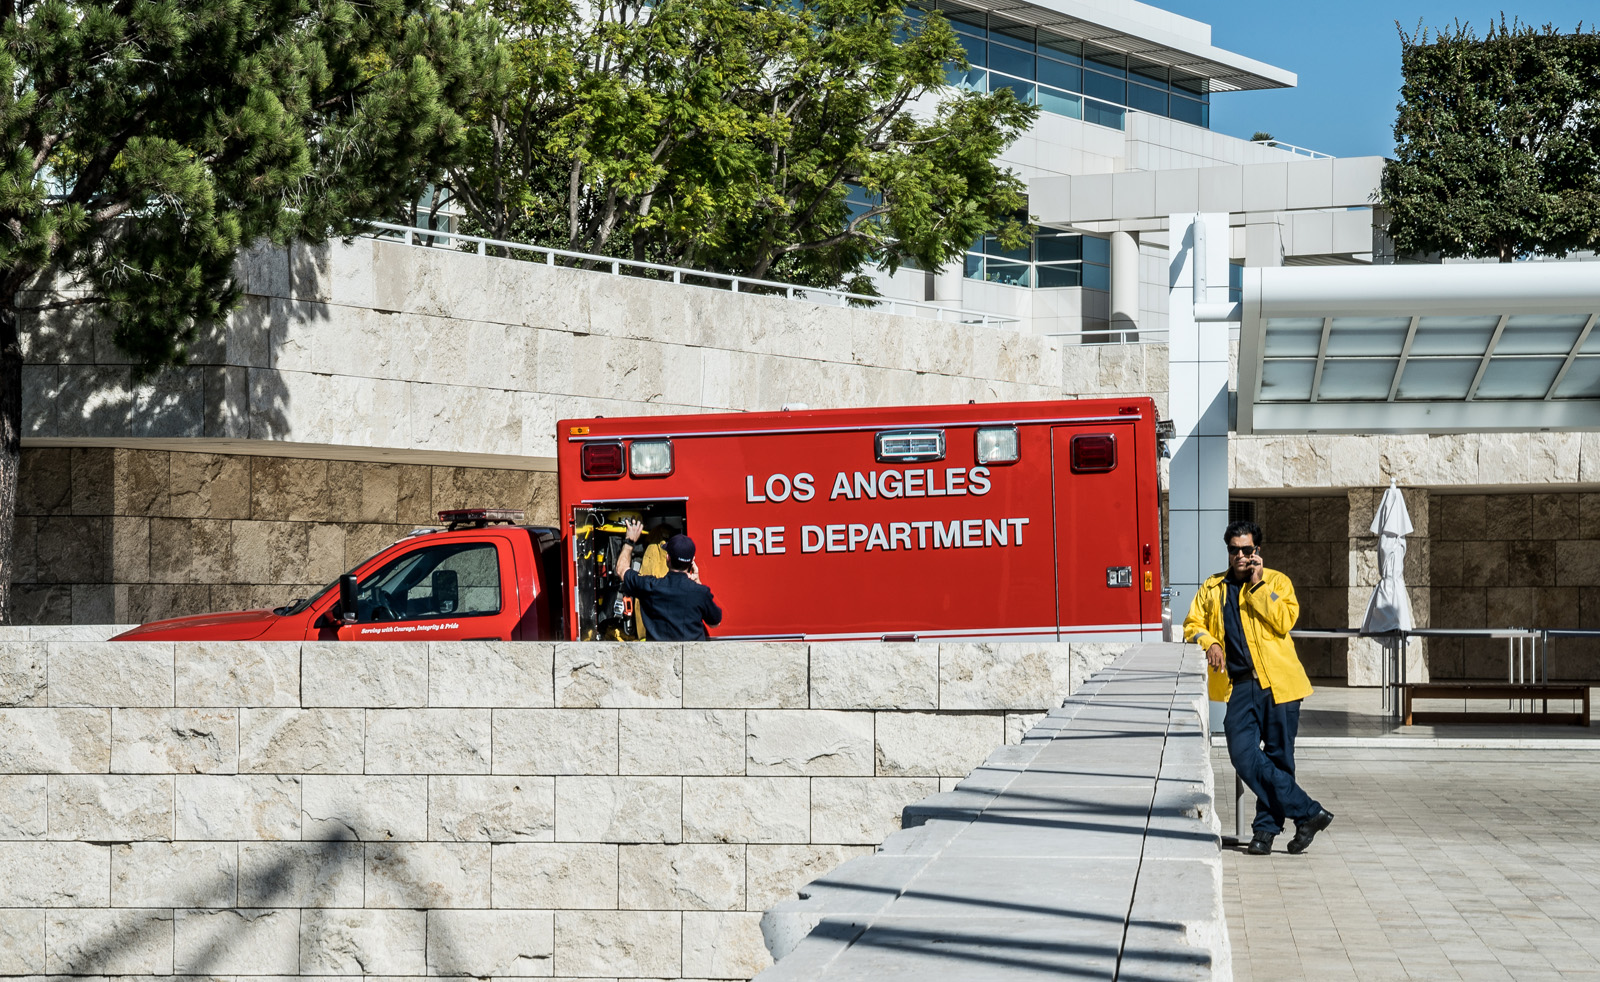 Responders continued to use Getty Center through late week as a place to stage equipment.